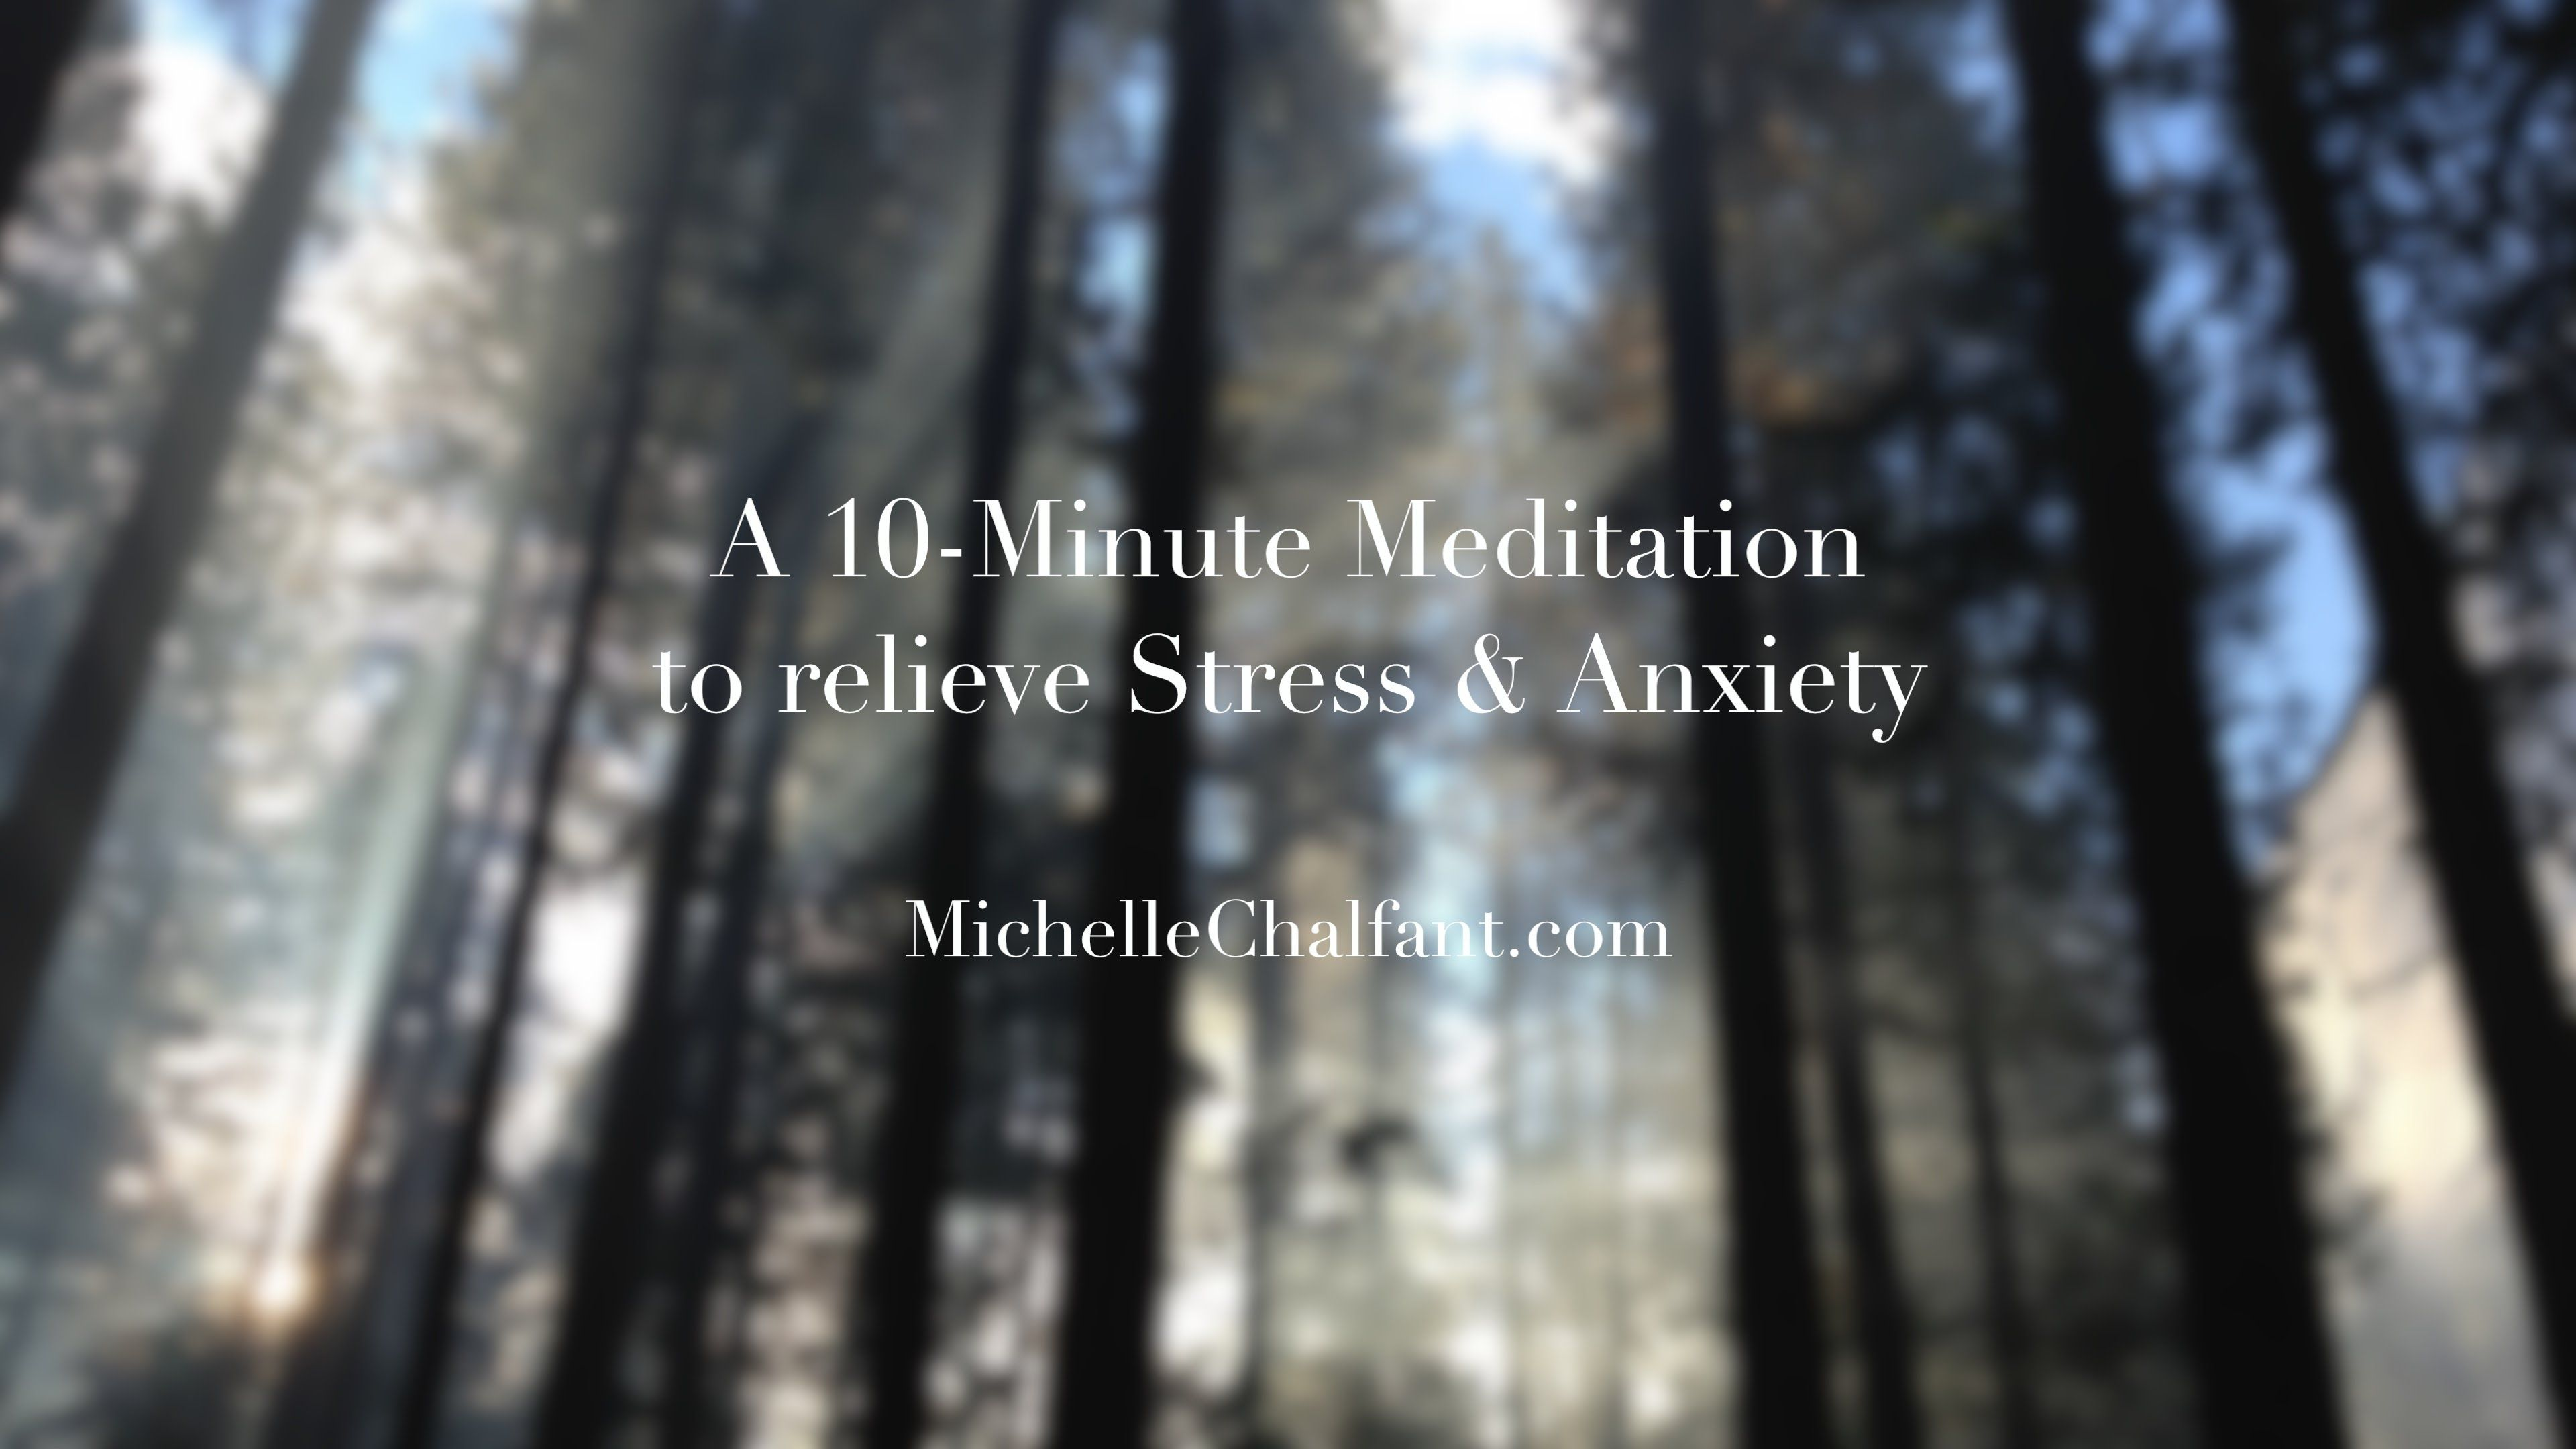 A 10-Minute Meditation to relieve Stress and Anxiety